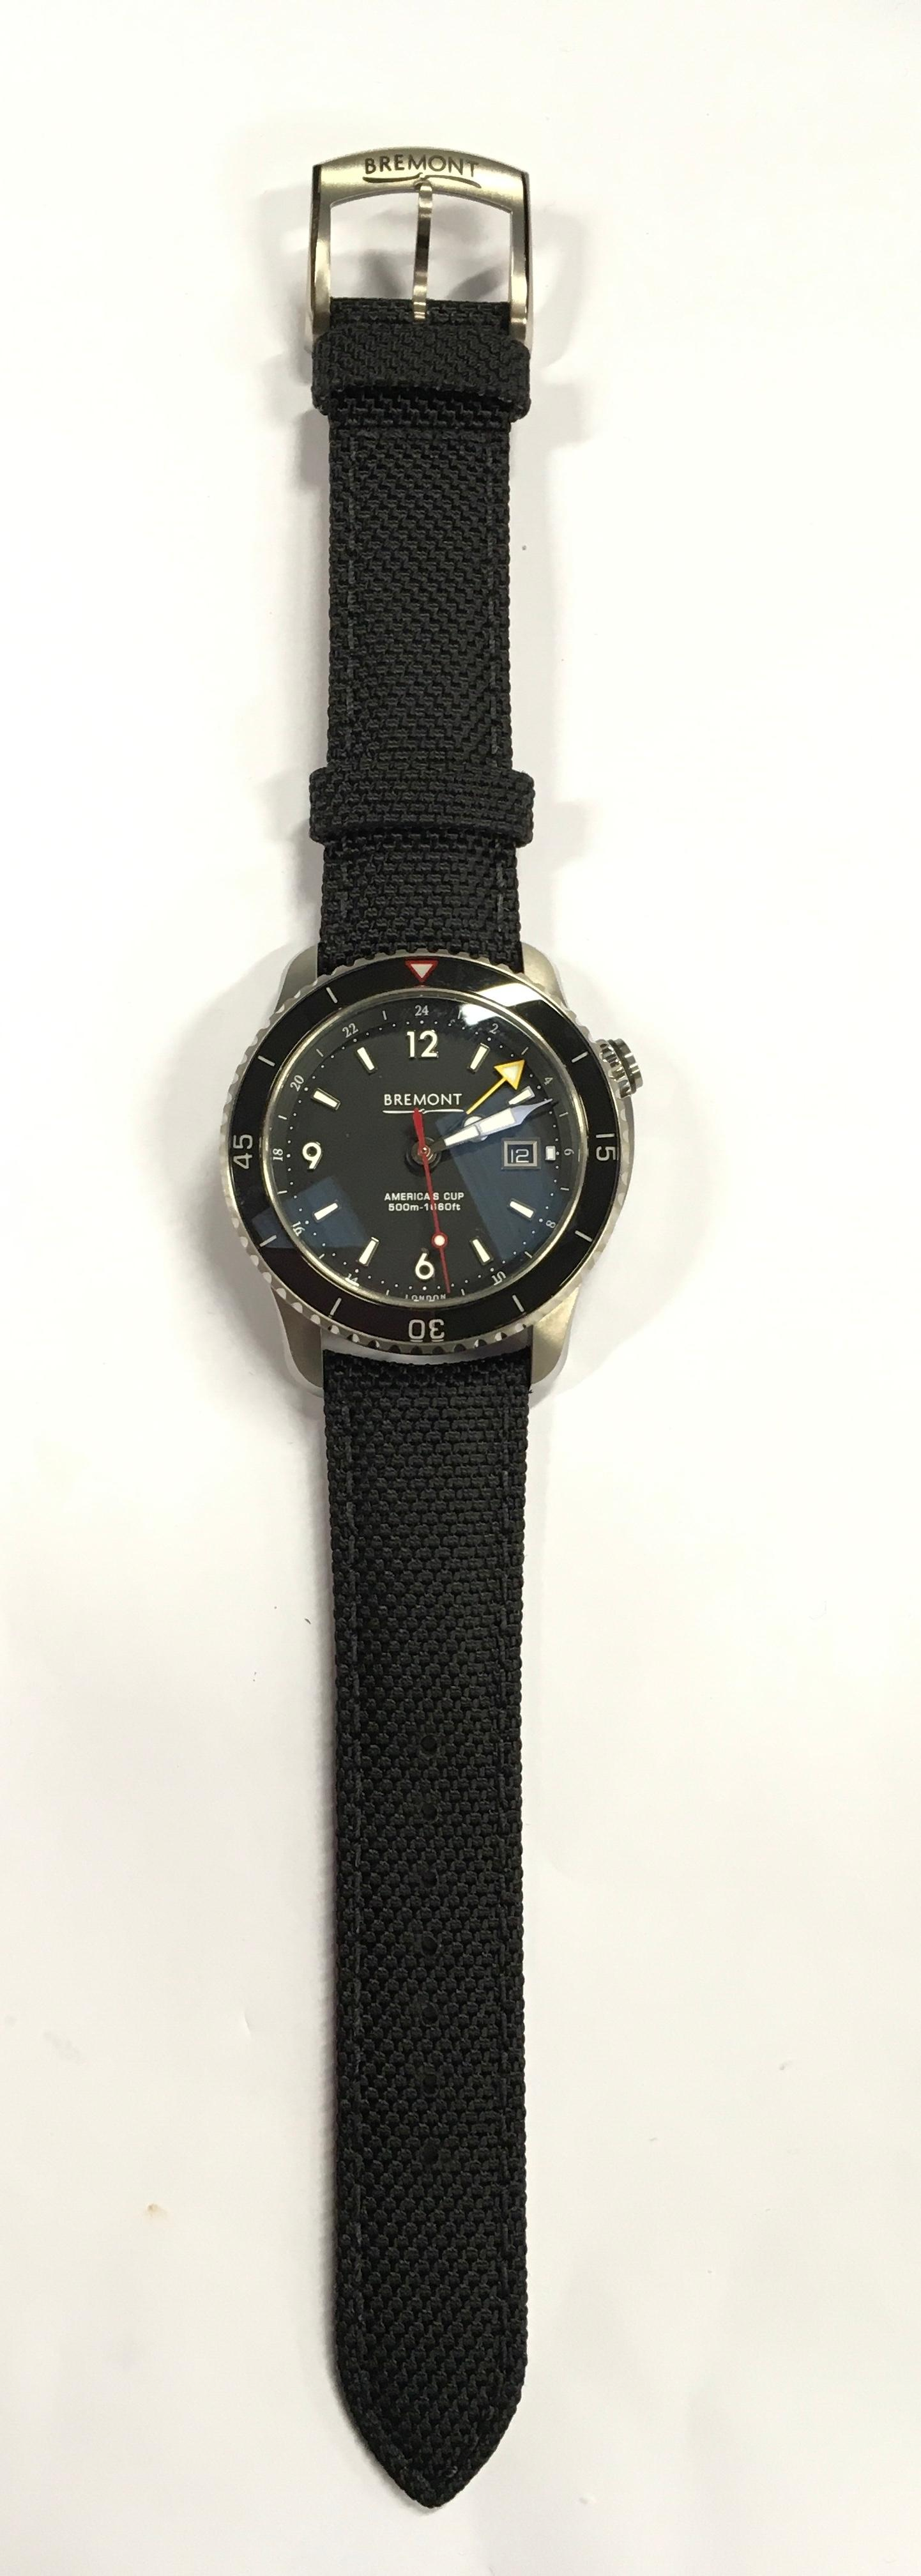 Stainless Steel Bremont America's Cup Watch, as new and complete, Limited Edition No 007/535. - Image 3 of 10